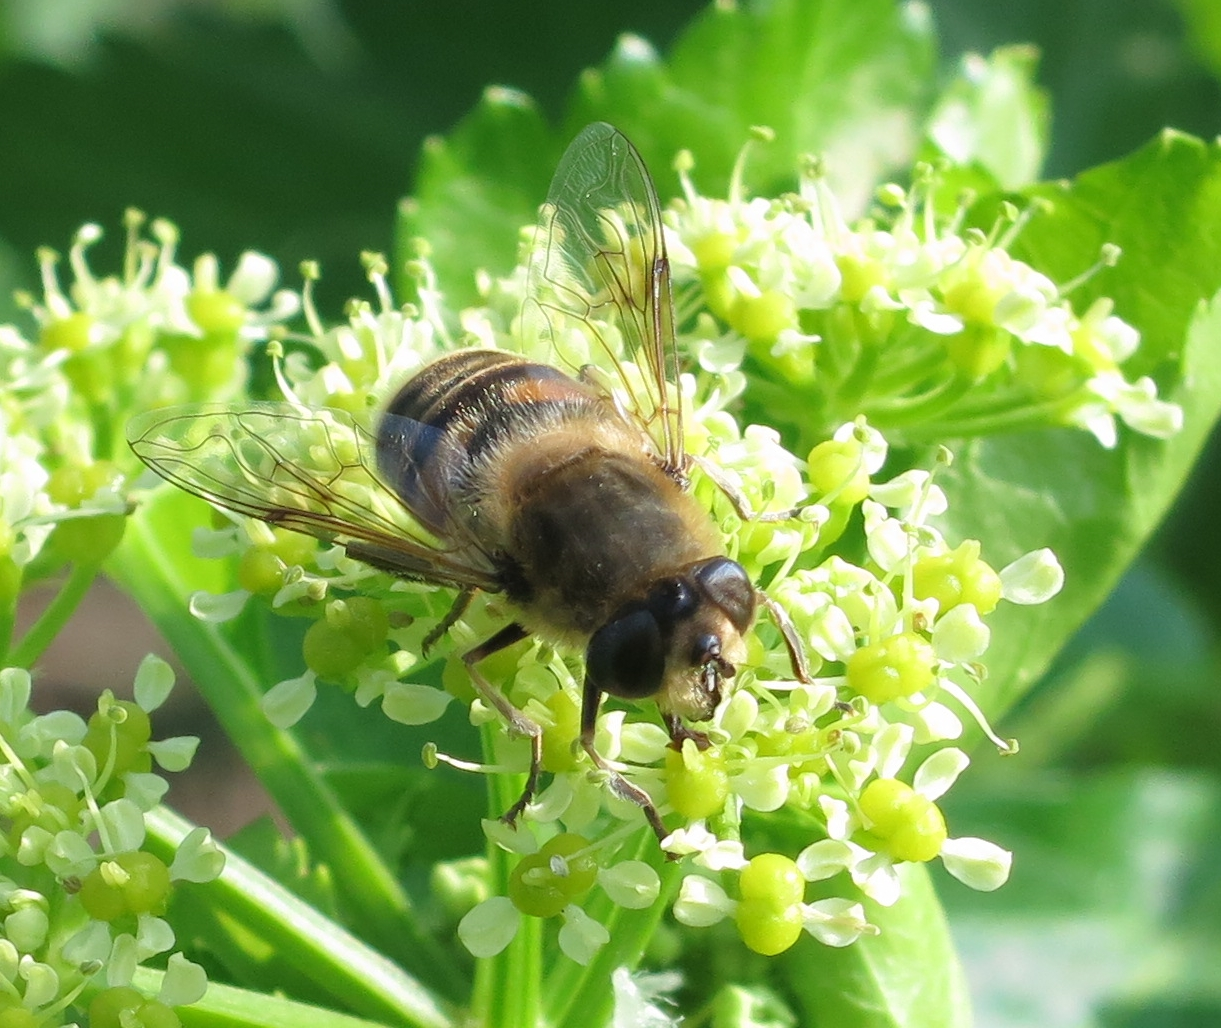 Hoverfly (Eristalis tenax) on Alexanders - face forwards